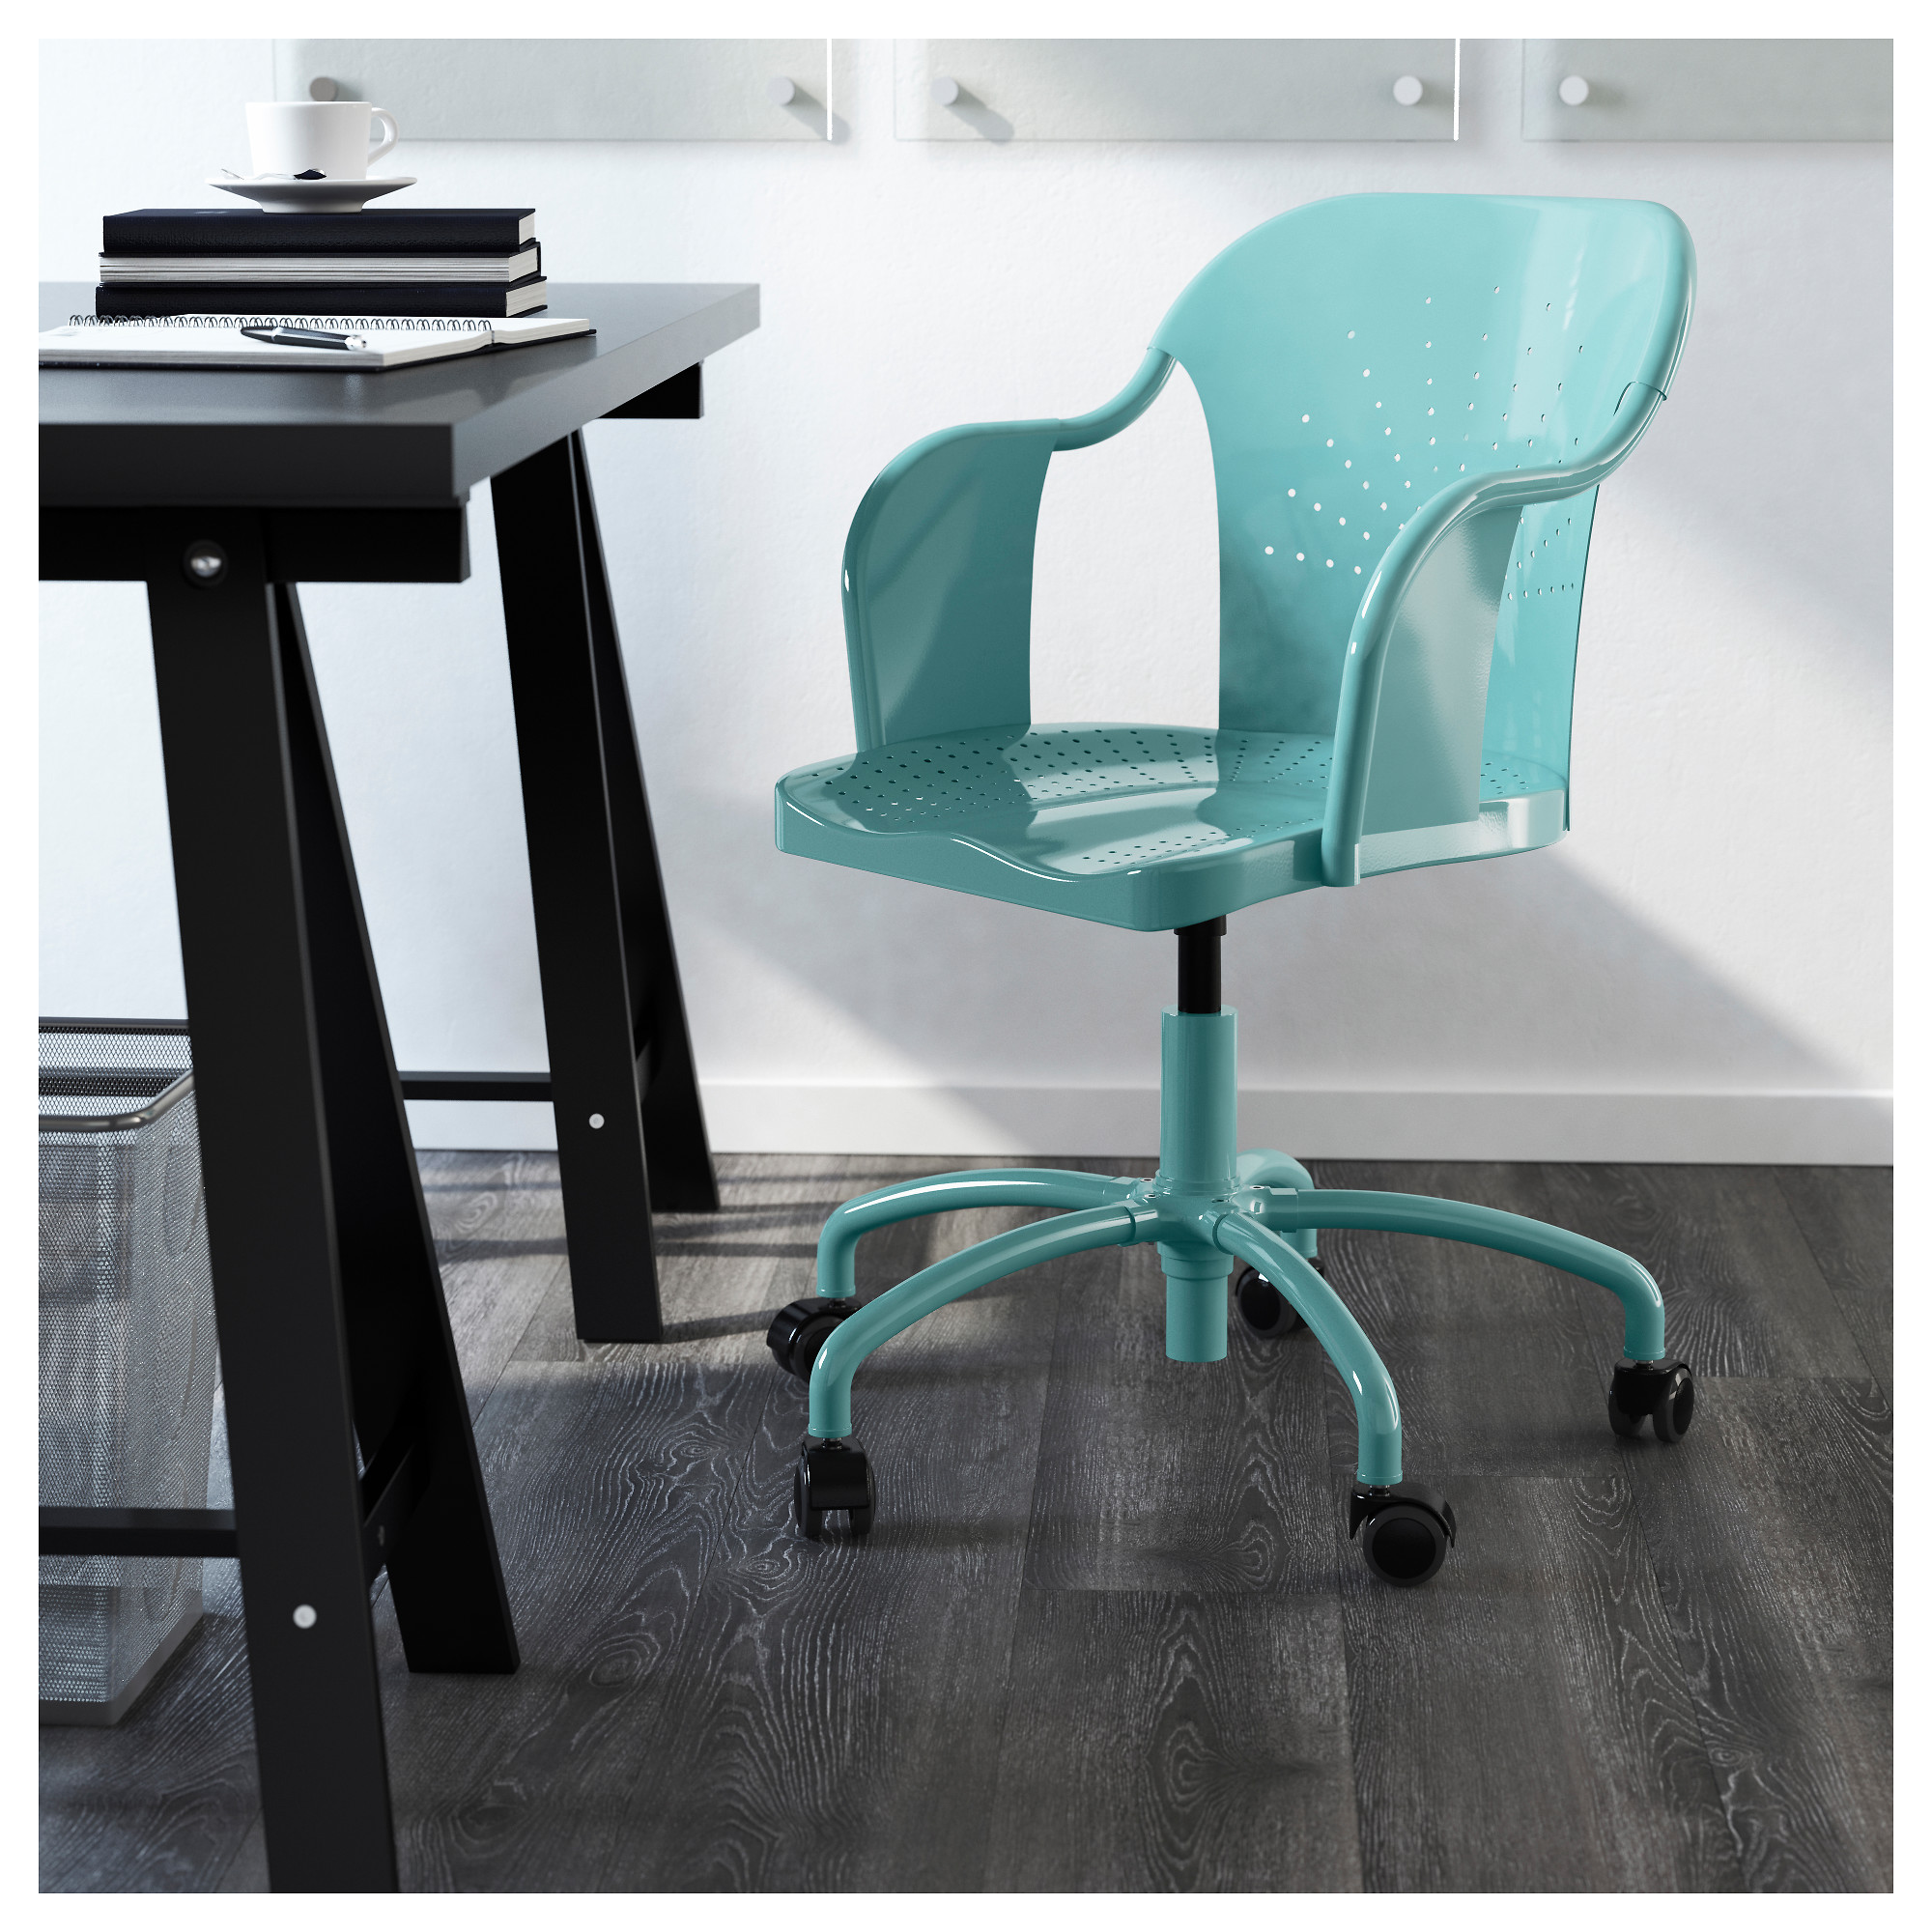 ROBERGET Swivel chair turquoise IKEA